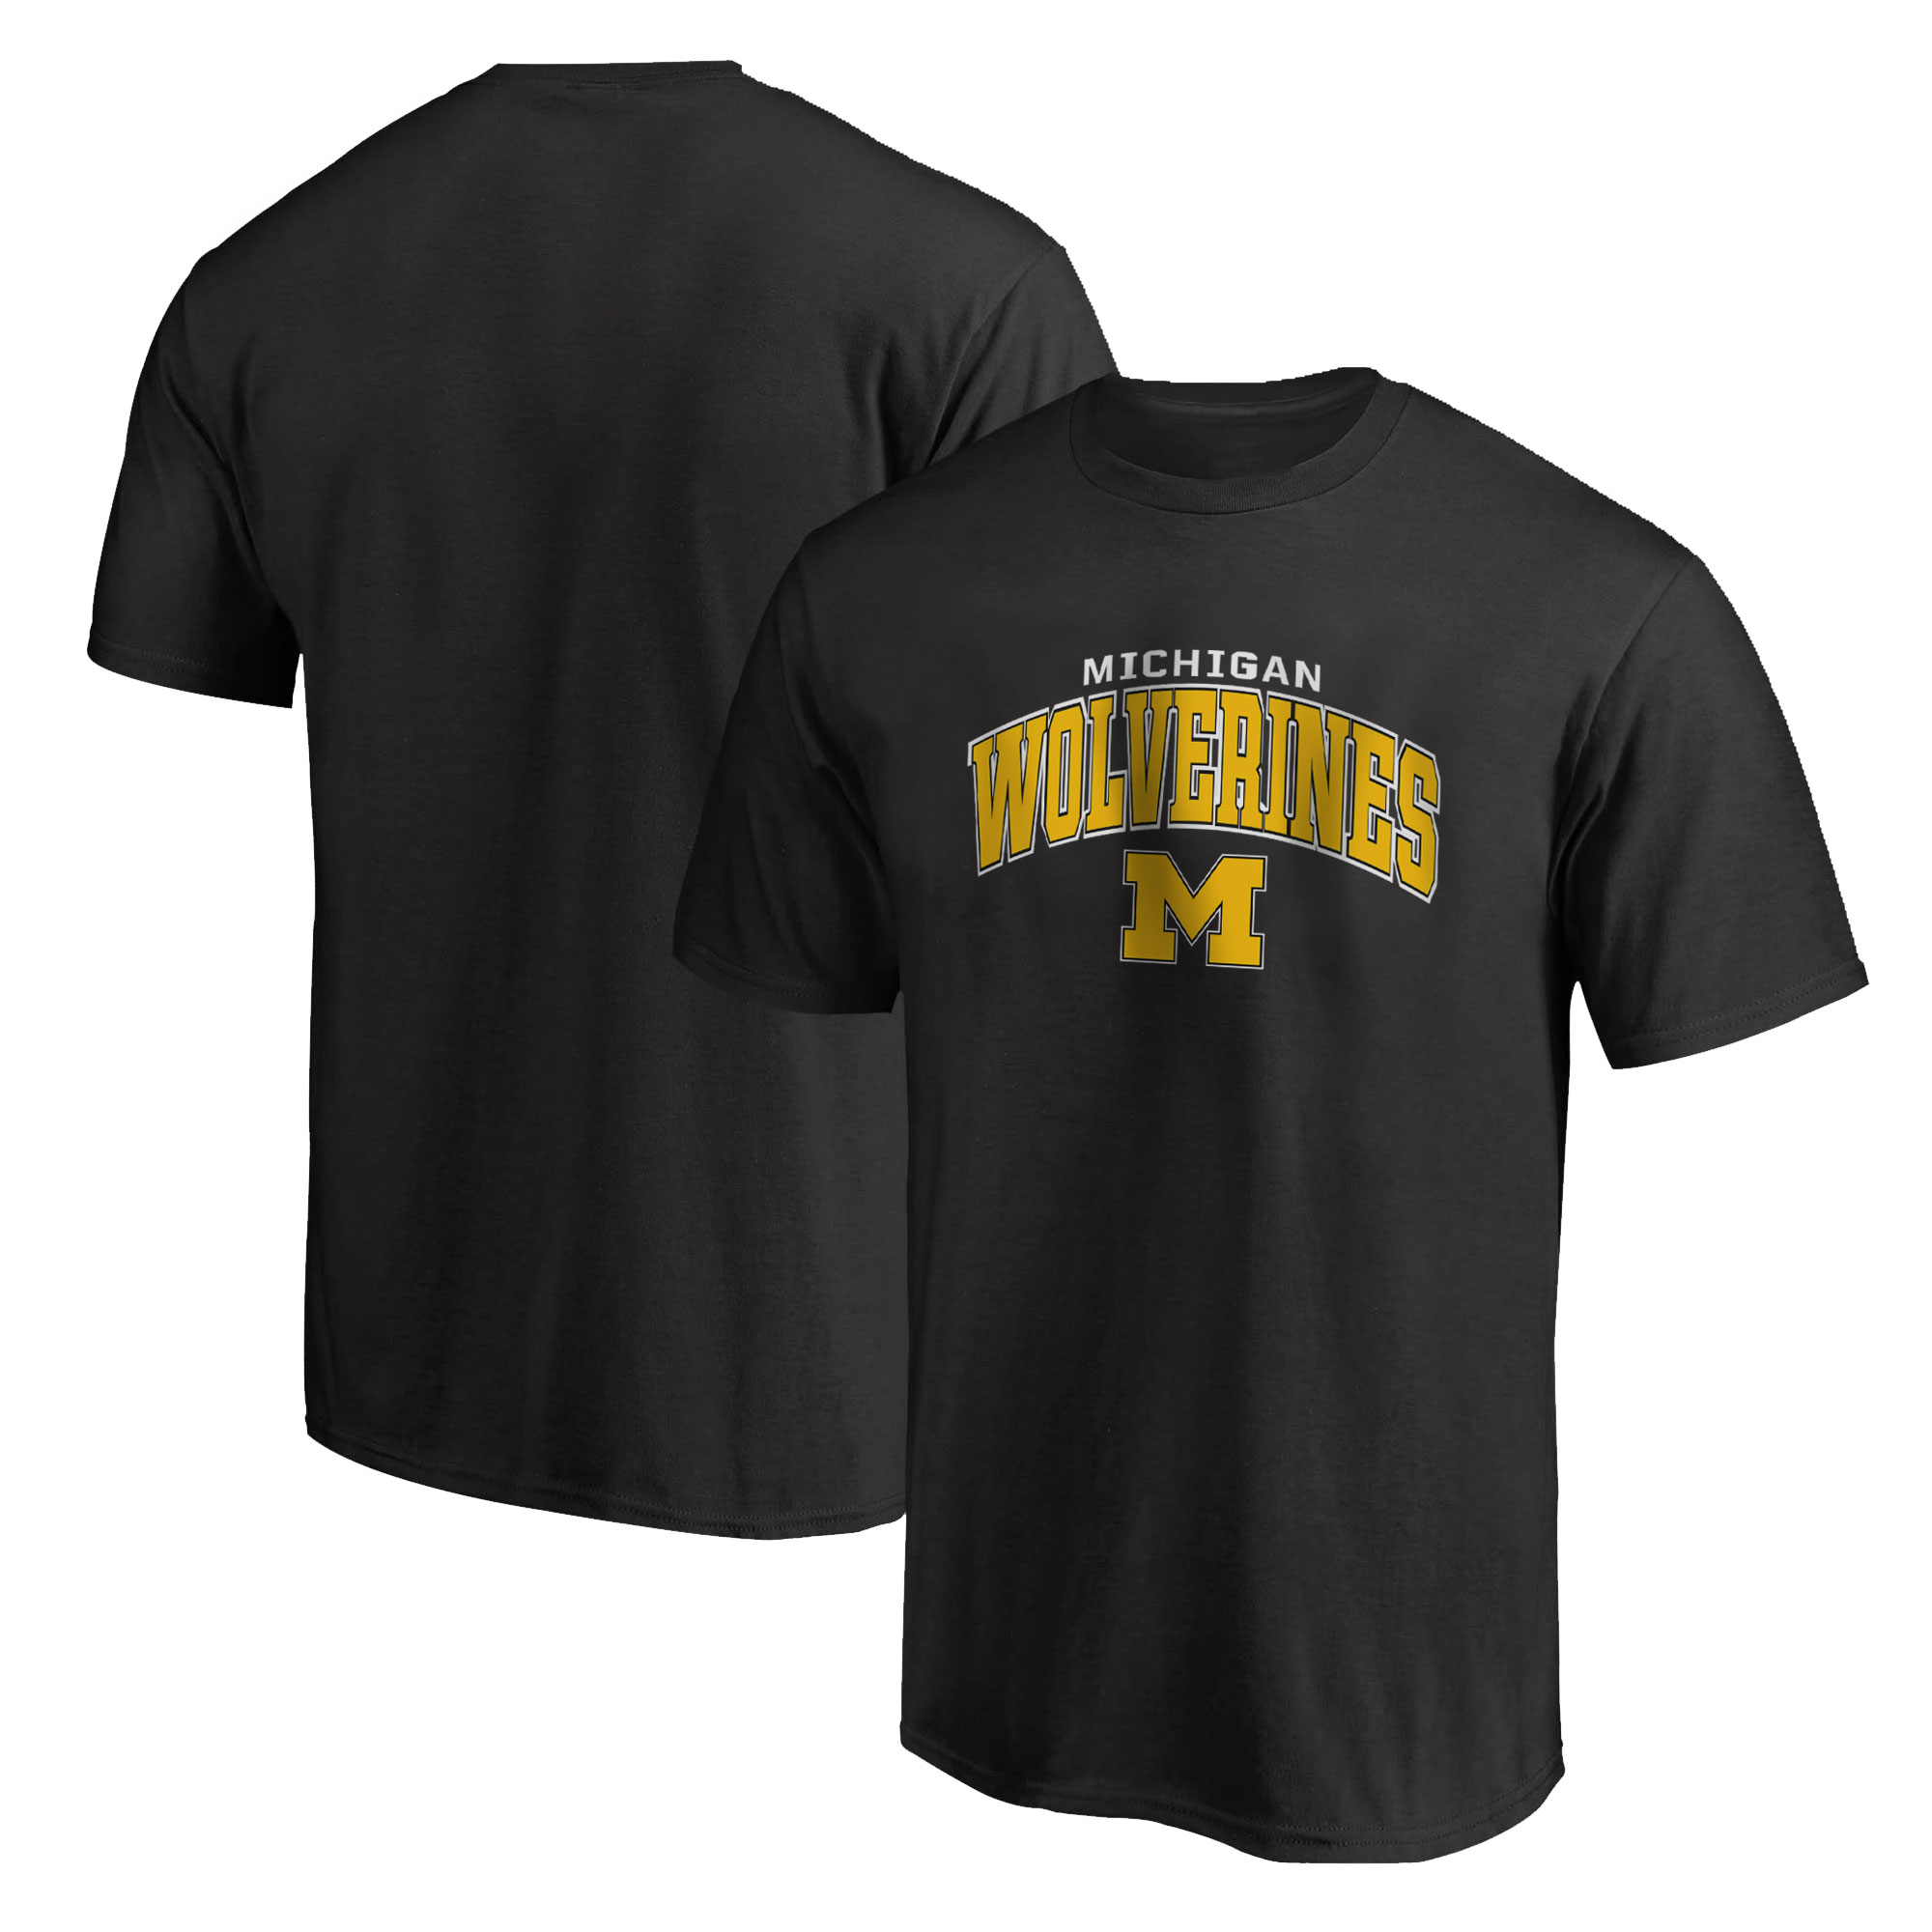 Michigan Wolverines Tshirt (TSH-BLC-488-NBA-MNW)